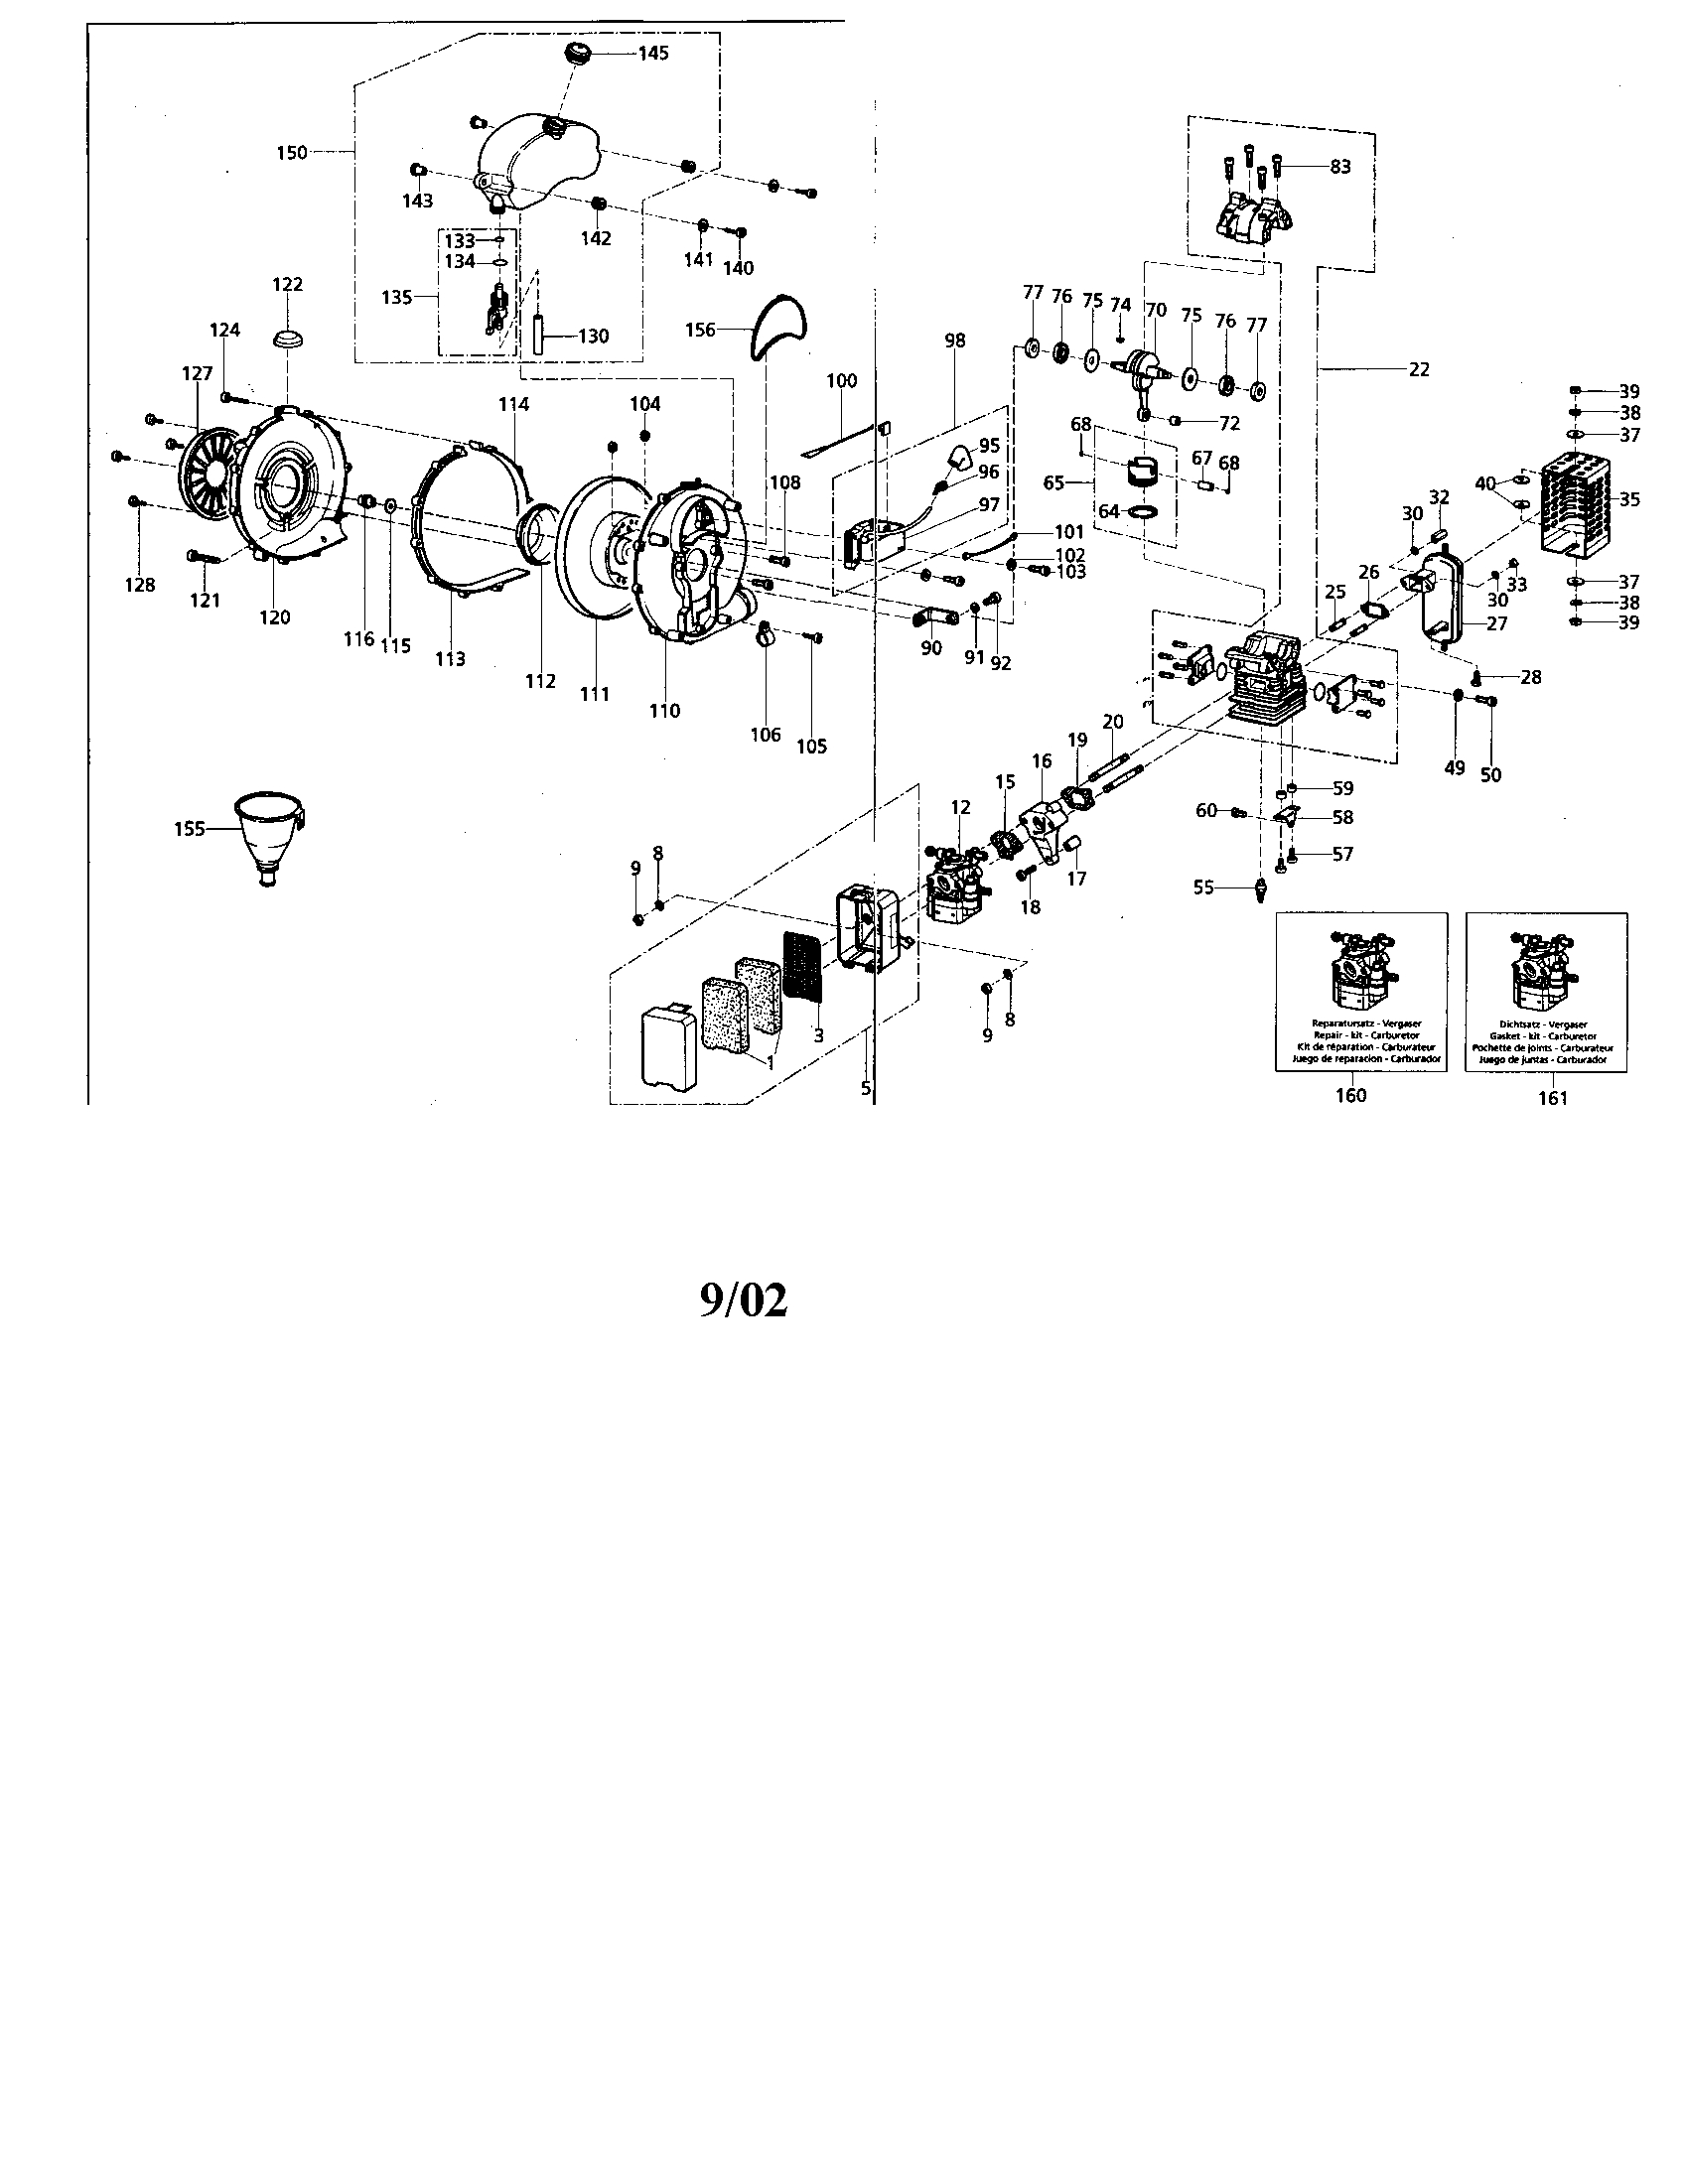 John Deere Power Flow Bagger Parts Diagram | Tractor Parts Service with regard to John Deere Power Flow Bagger Parts Diagram